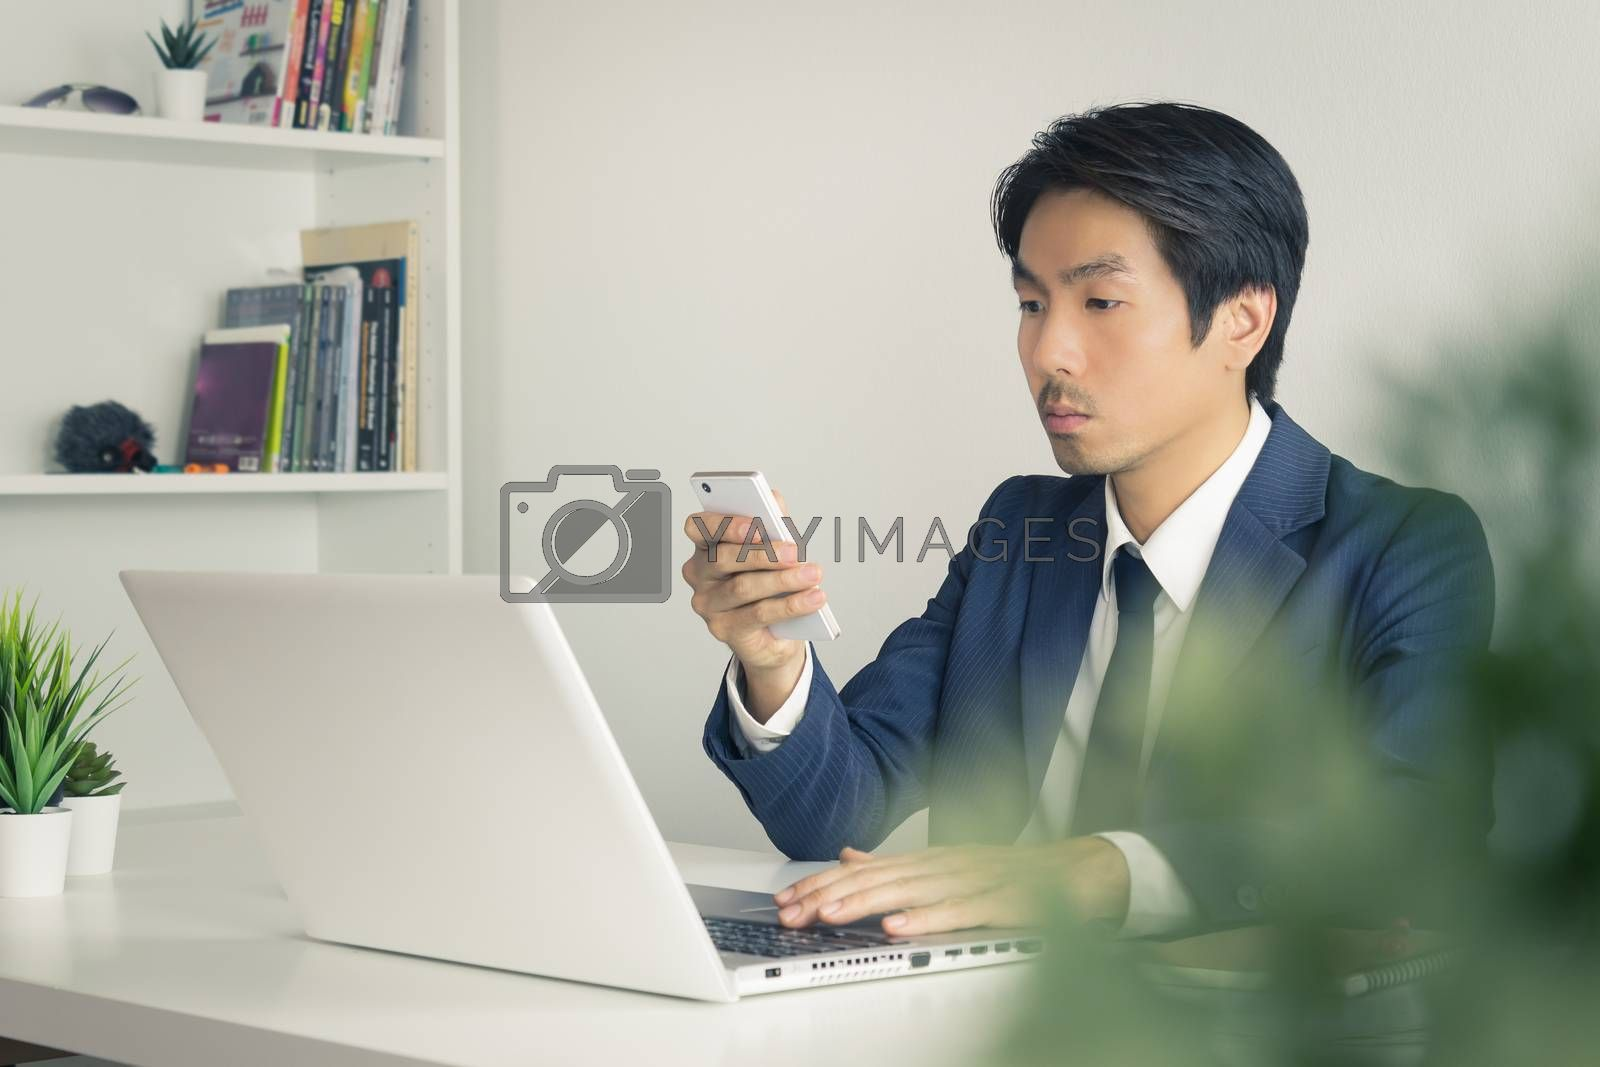 Asian Financial Advisor or Asian Consulting Businessman Use Smartphone and Laptop in Office. Asian financial advisor or Asian consulting businessman contact with customer